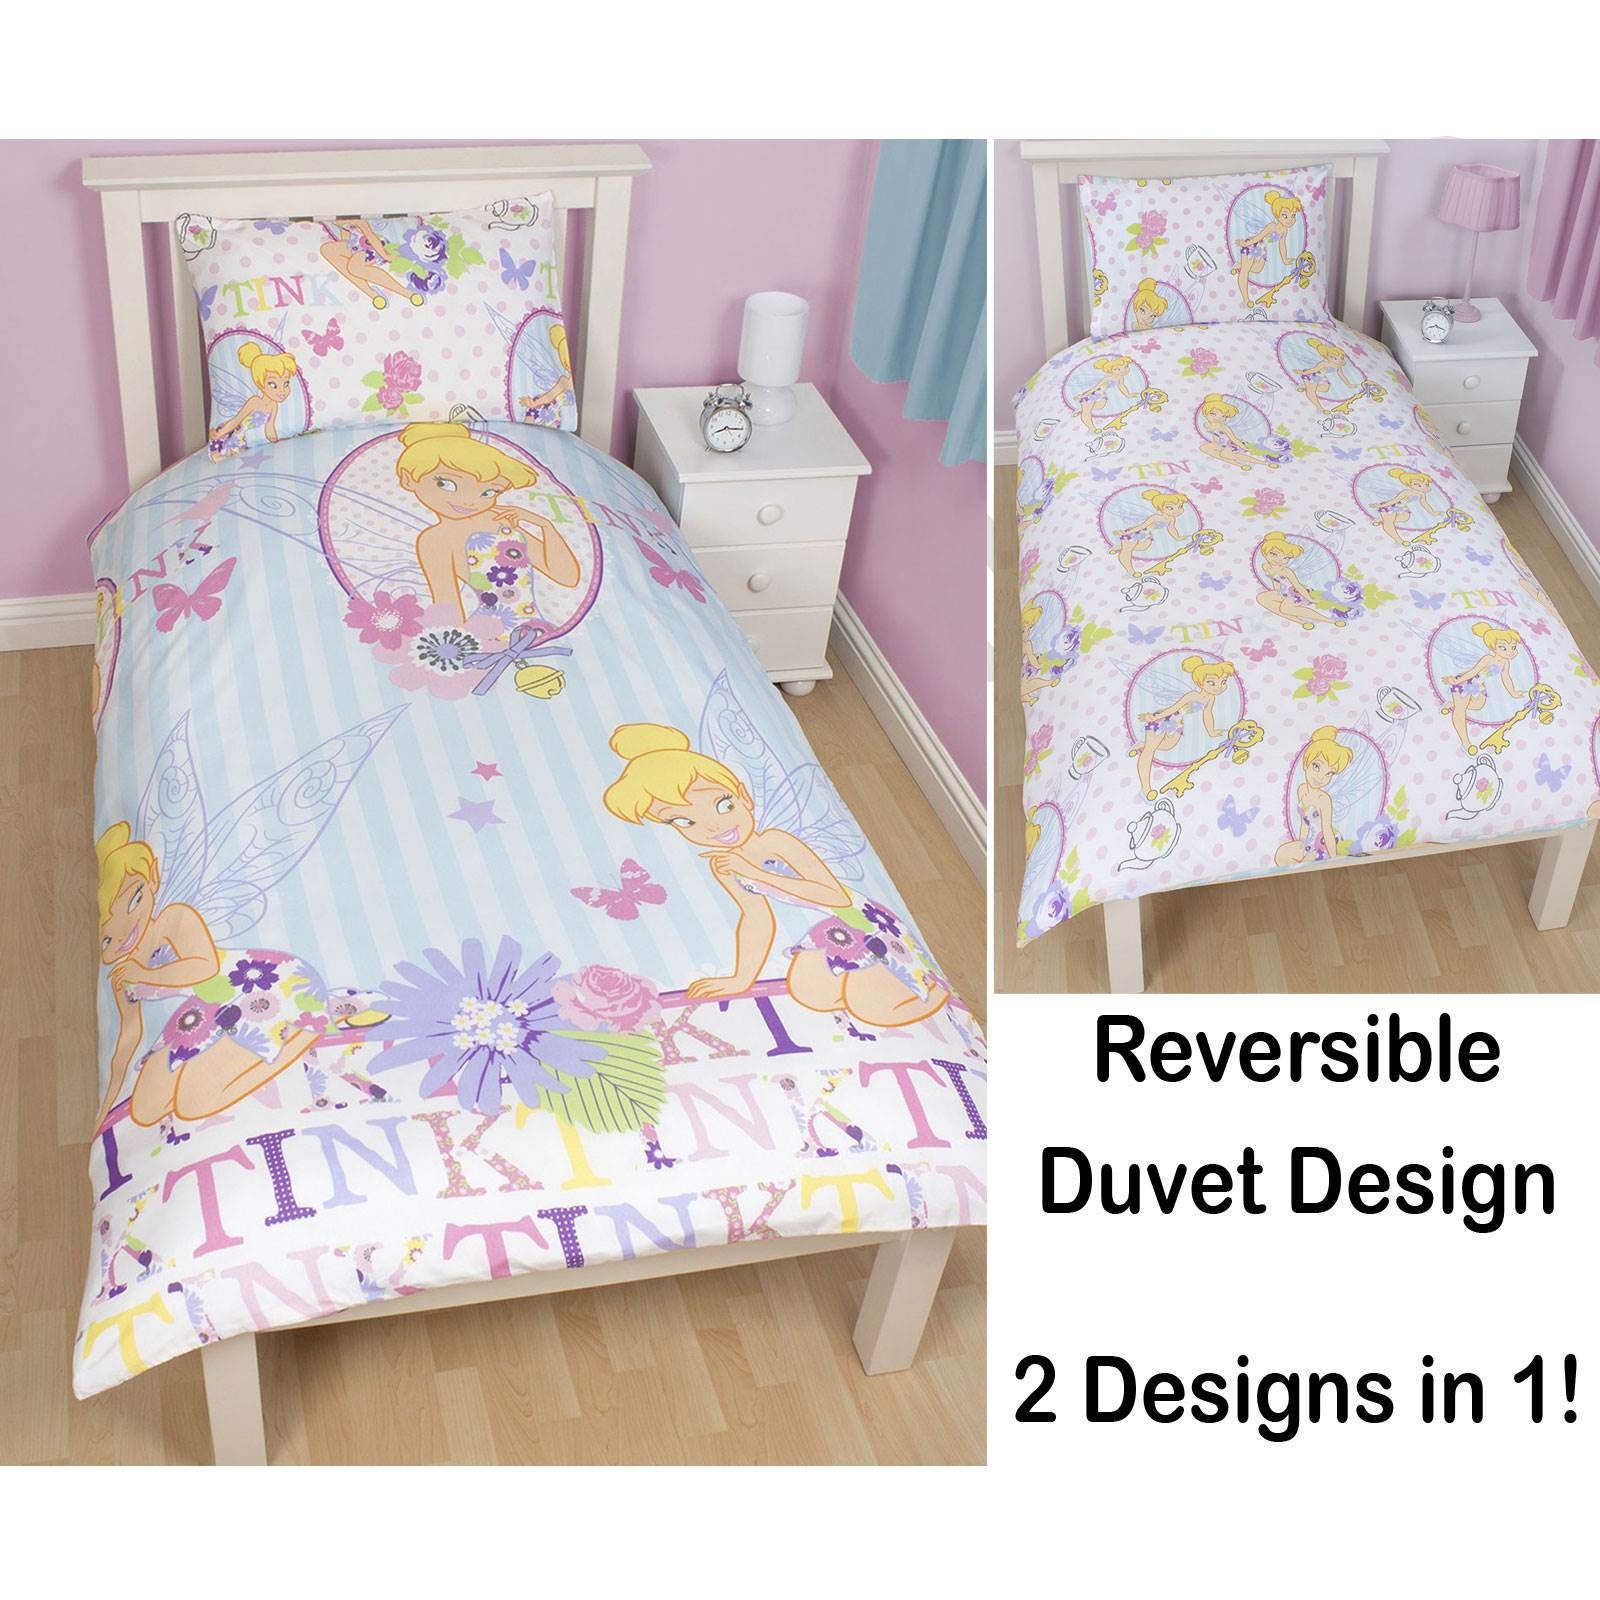 housse de couette simple imprim caract re disney parure de lit enfants ebay. Black Bedroom Furniture Sets. Home Design Ideas